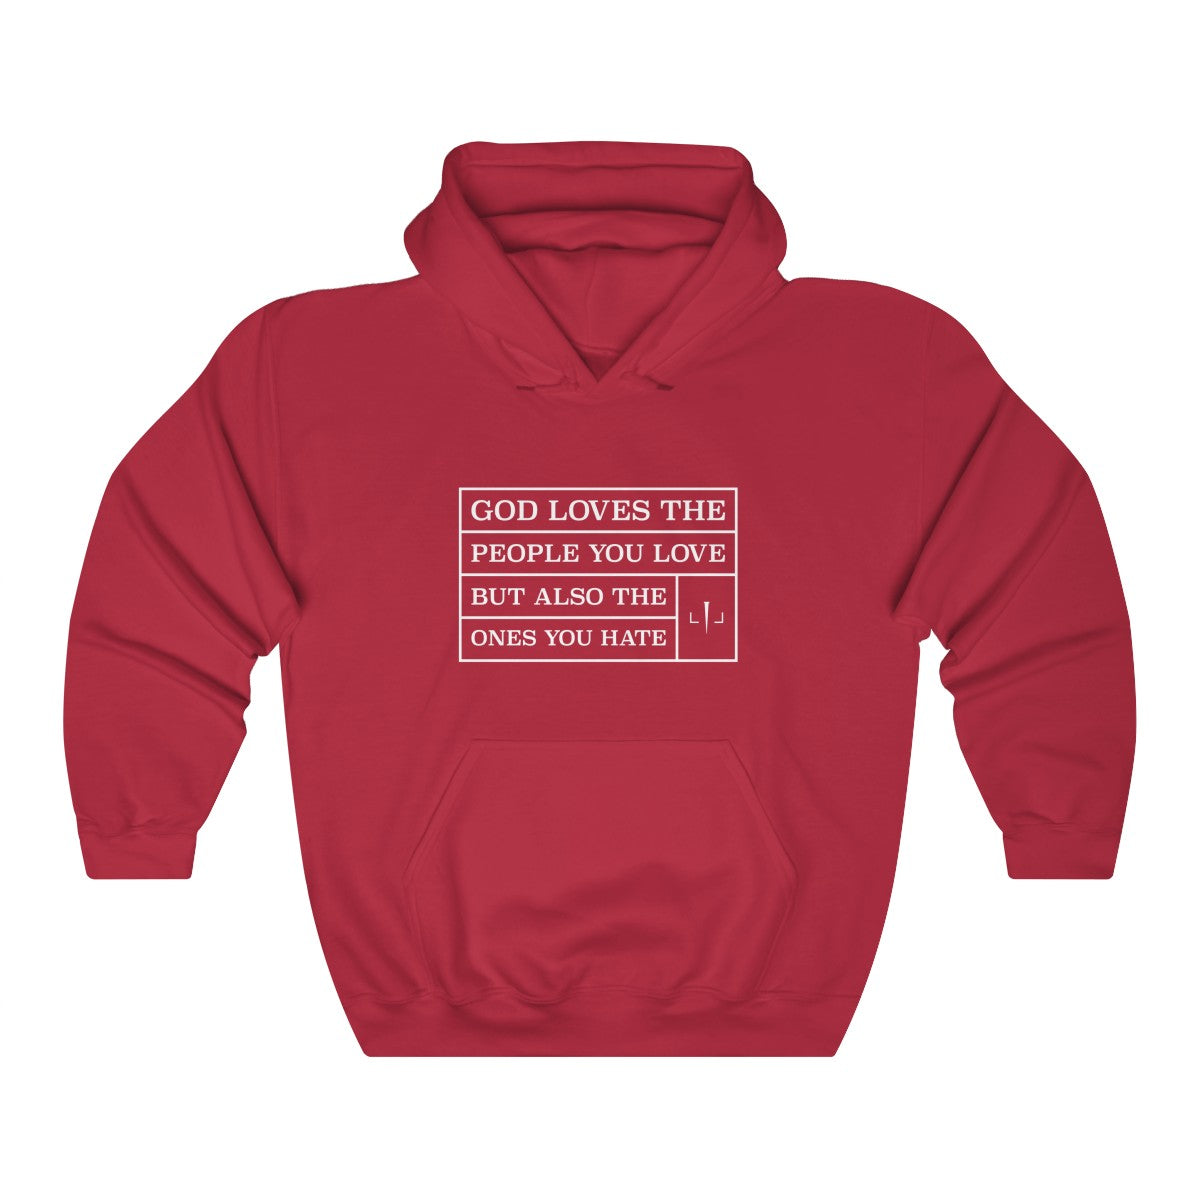 God Loves The People You Love But Also The Ones You Hate Unisex Heavy Blend™ Hooded Sweatshirt